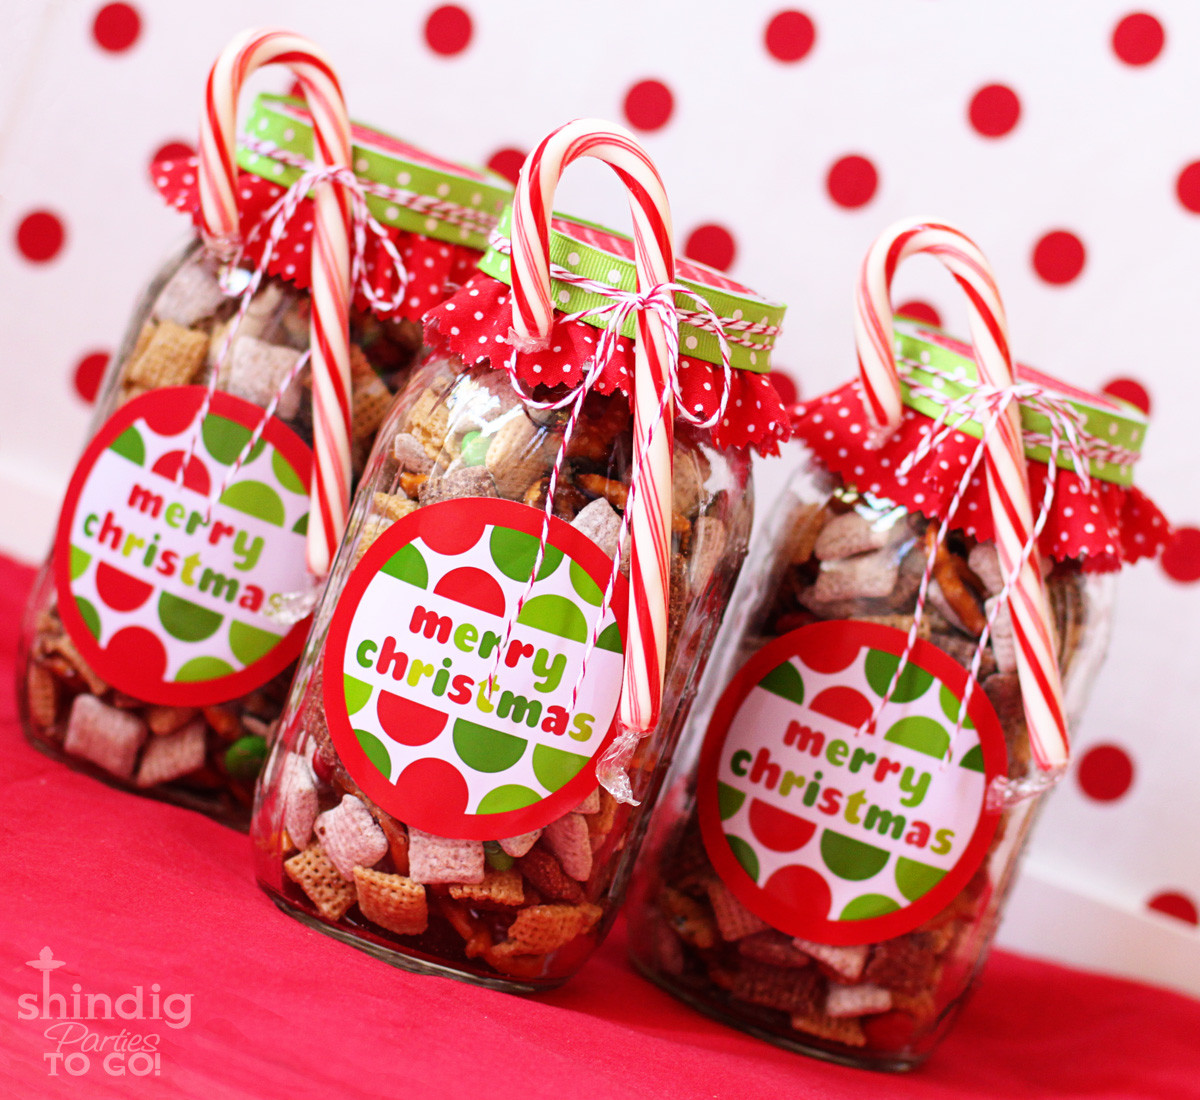 Easy Christmas Gift Ideas  How To Make Handmade Chex Mix Holiday Gifts & Bonus Free